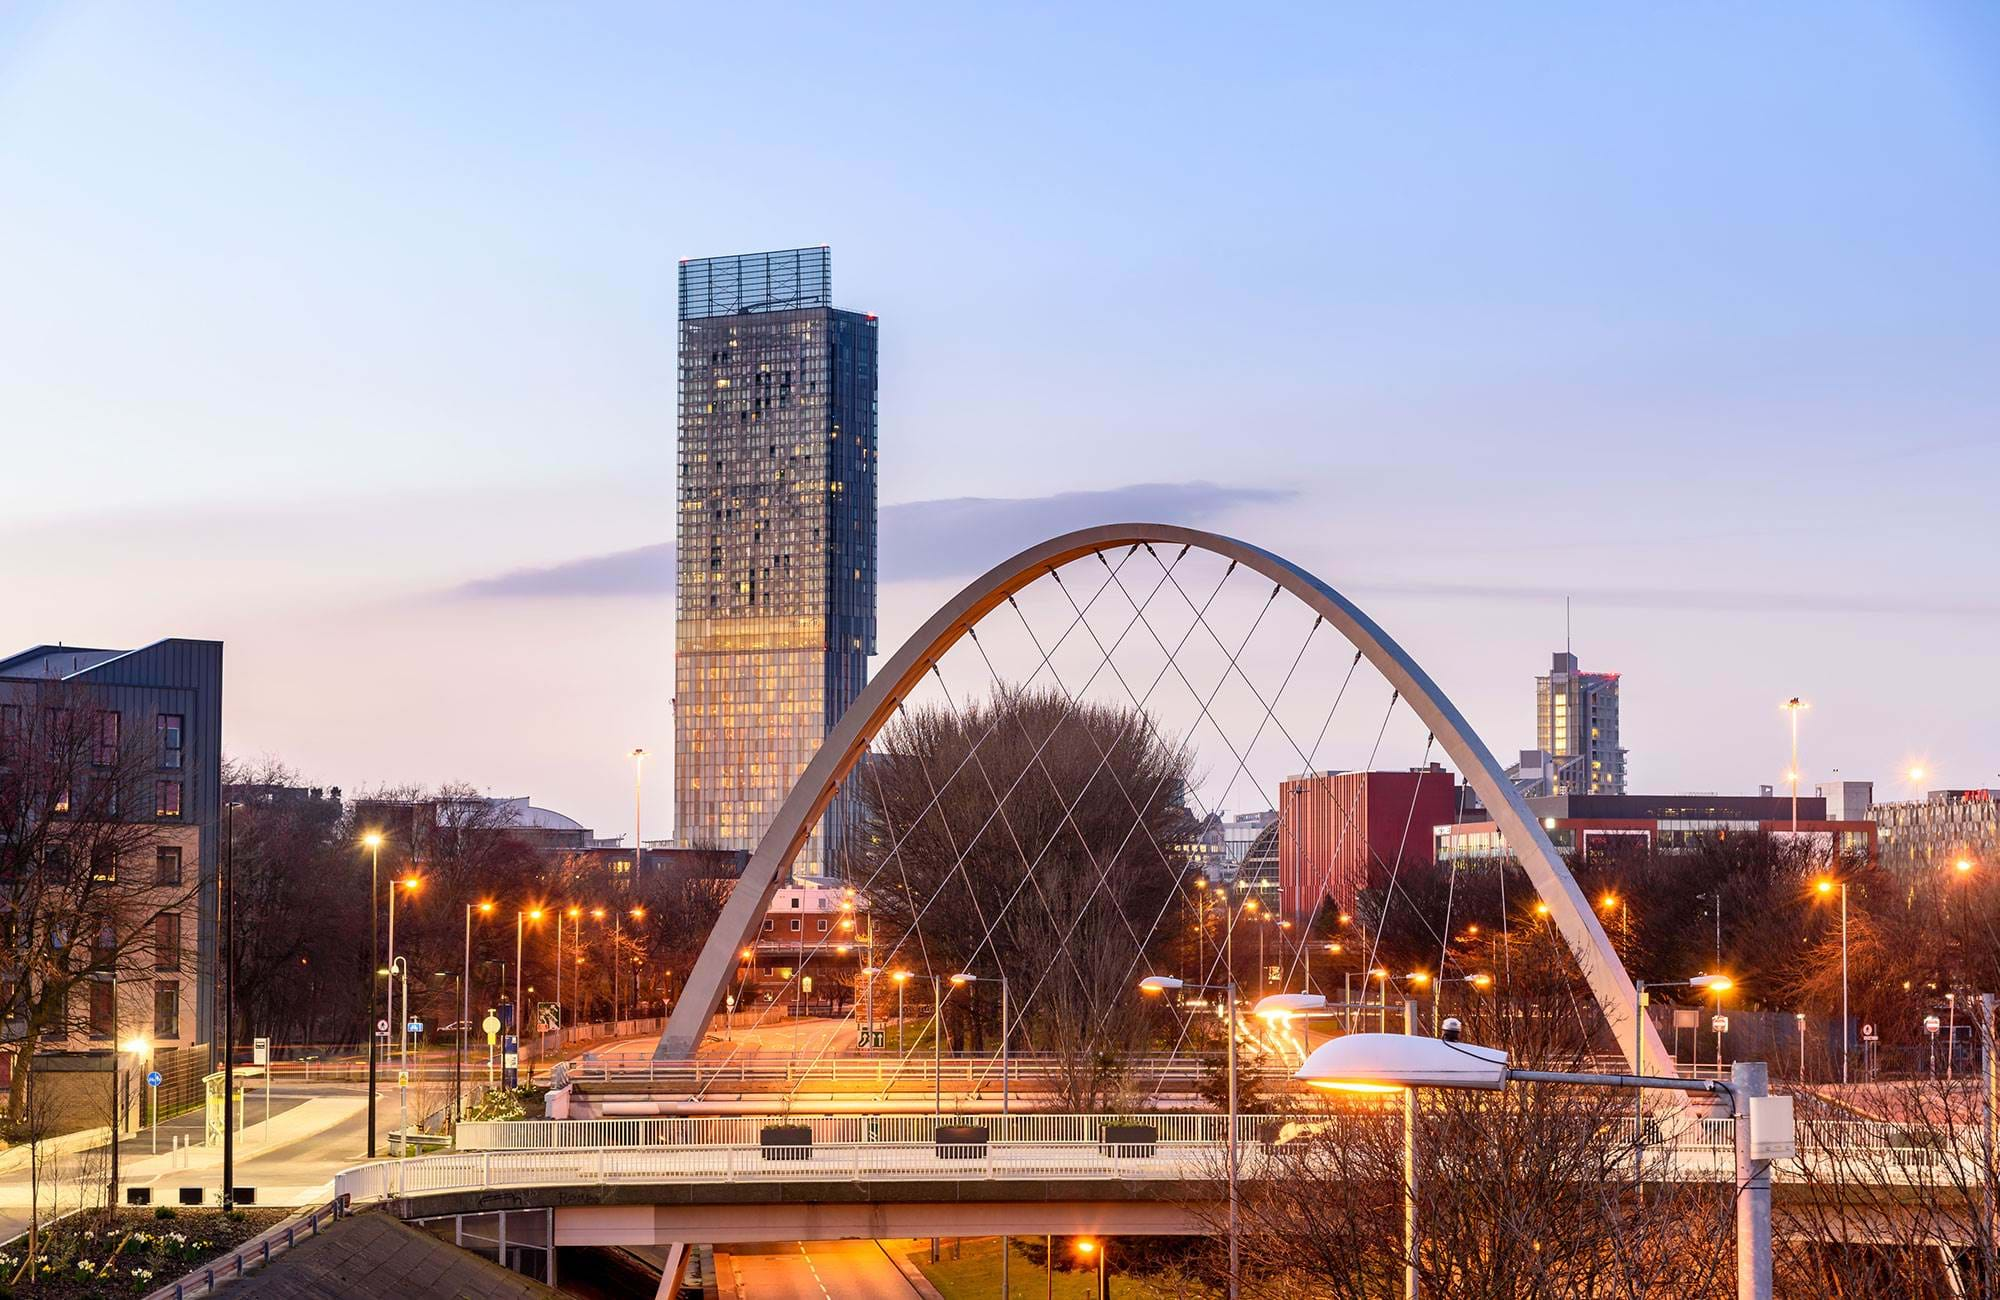 Birmingham England Hulme Arch Bridge Beetham Tower